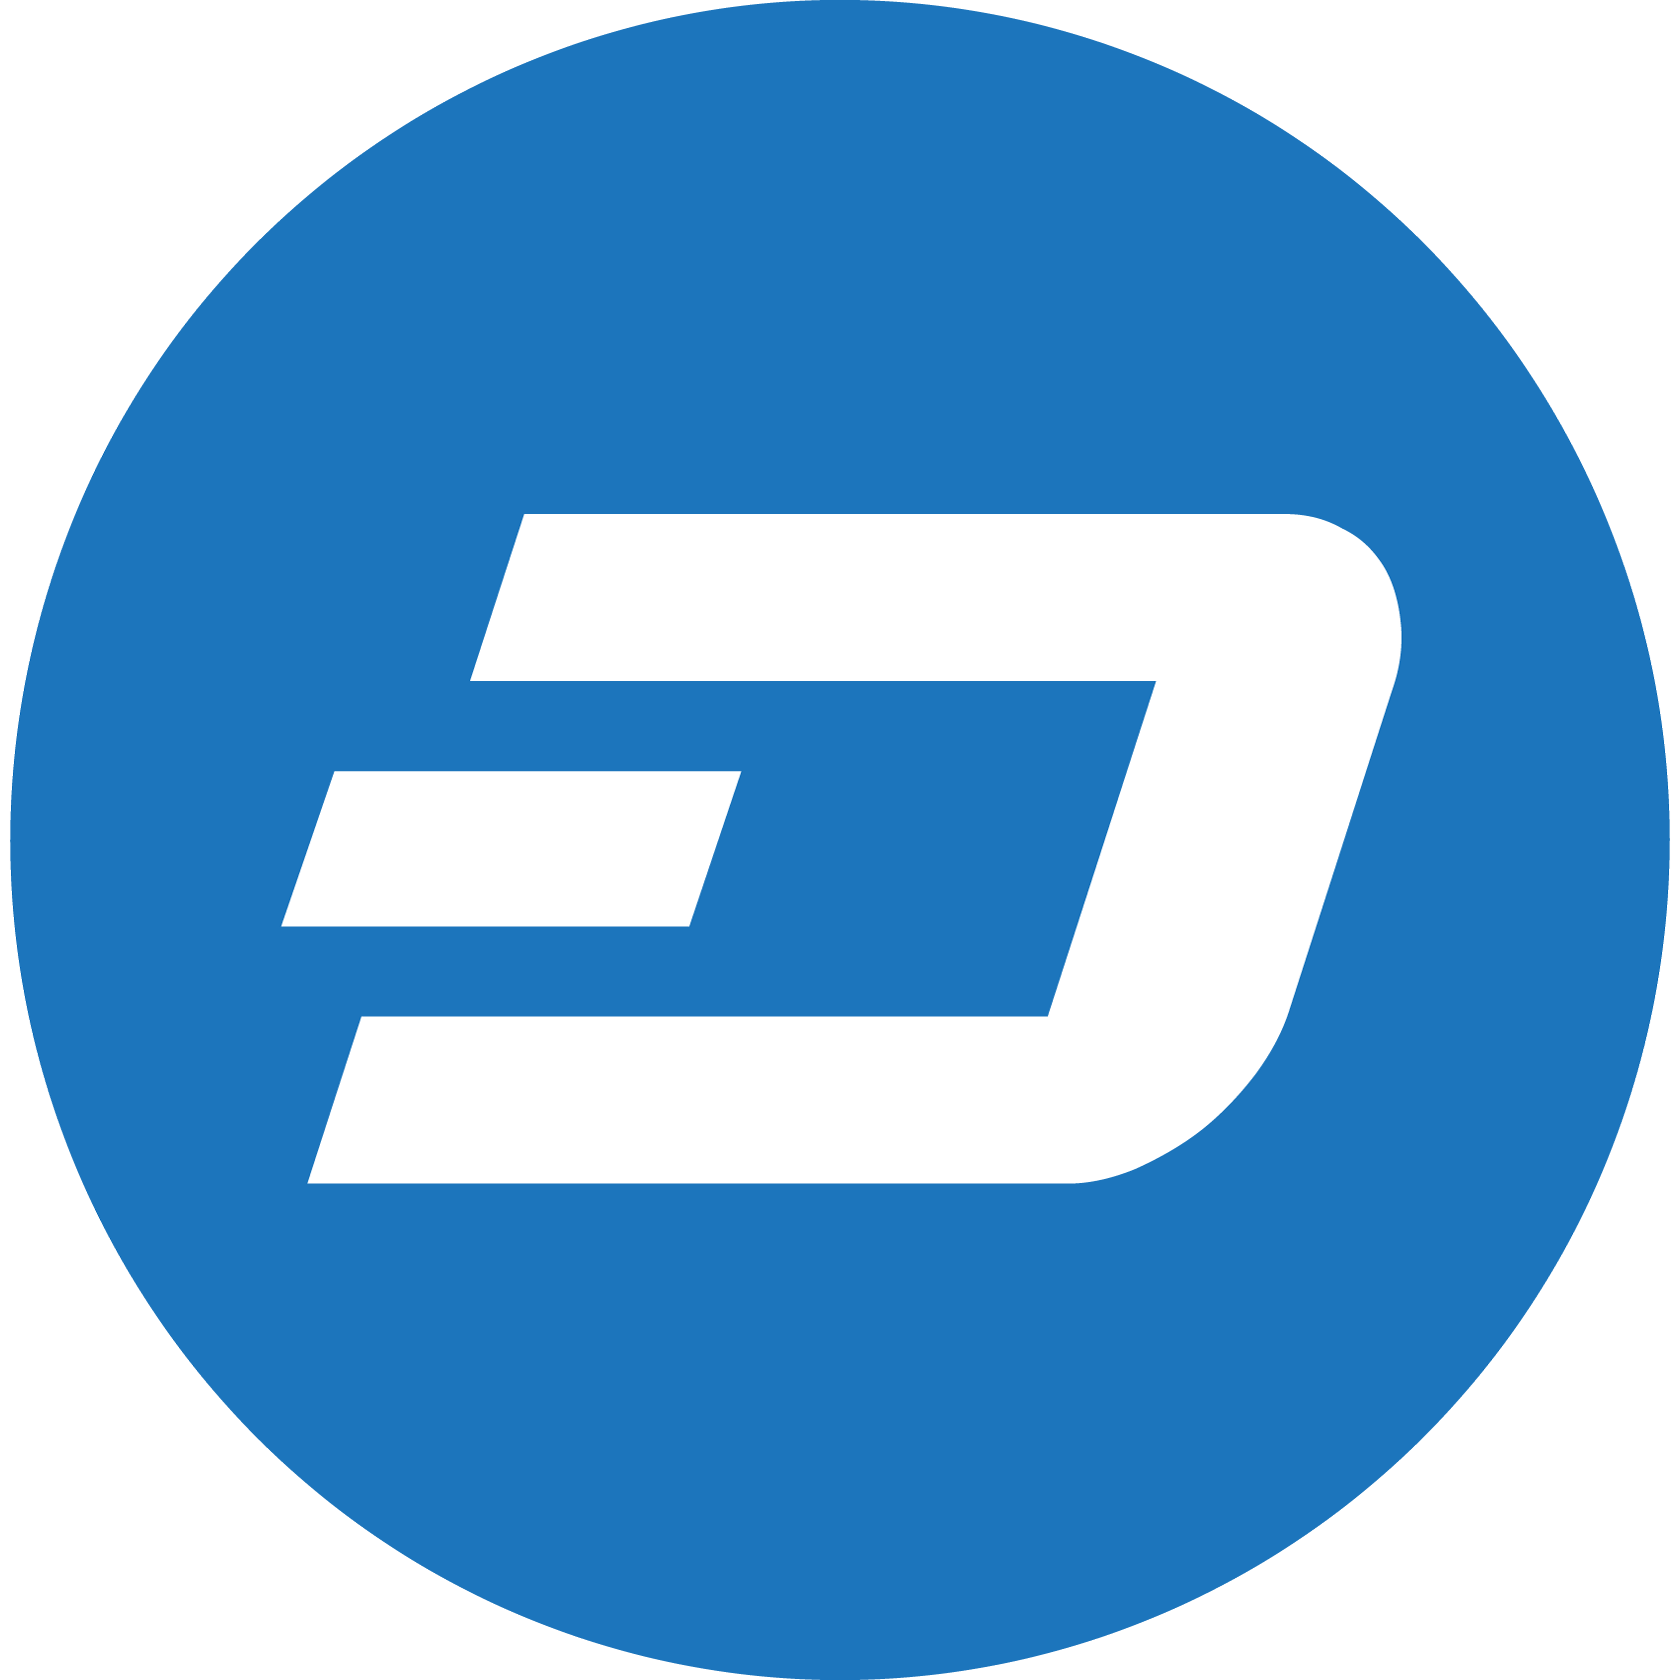 httpswww.bitpush.newswp-contentuploads201808Why-Dash-is-a-Top-Candidate-for-Coinbase-Listing.png